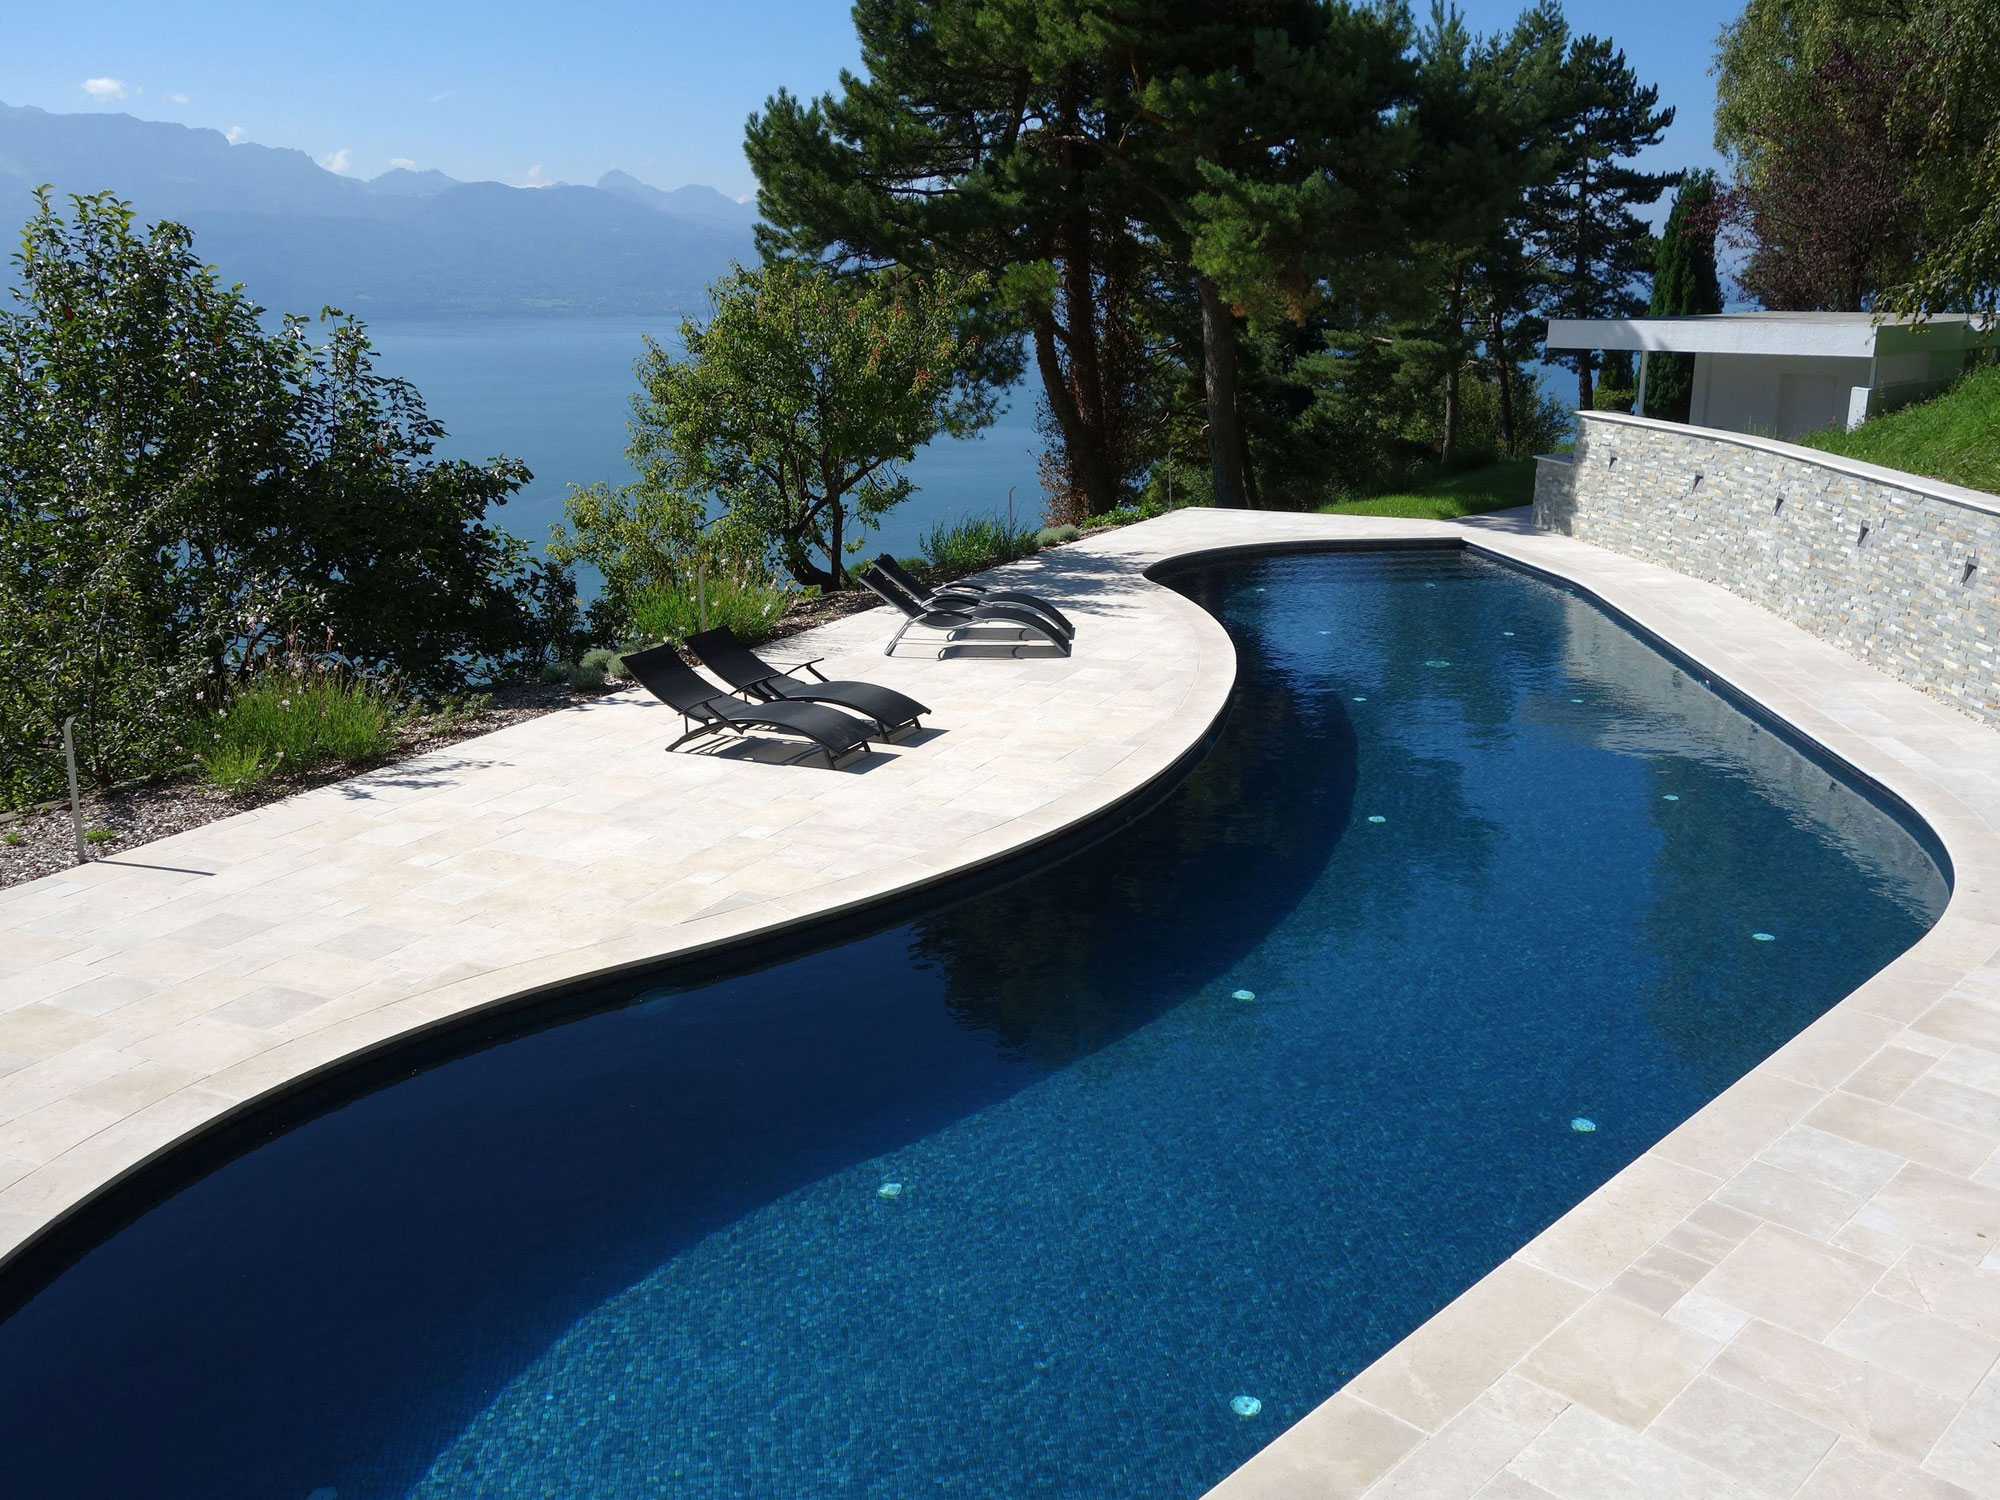 renovation piscine beton nicolliers piscines suisse. Black Bedroom Furniture Sets. Home Design Ideas